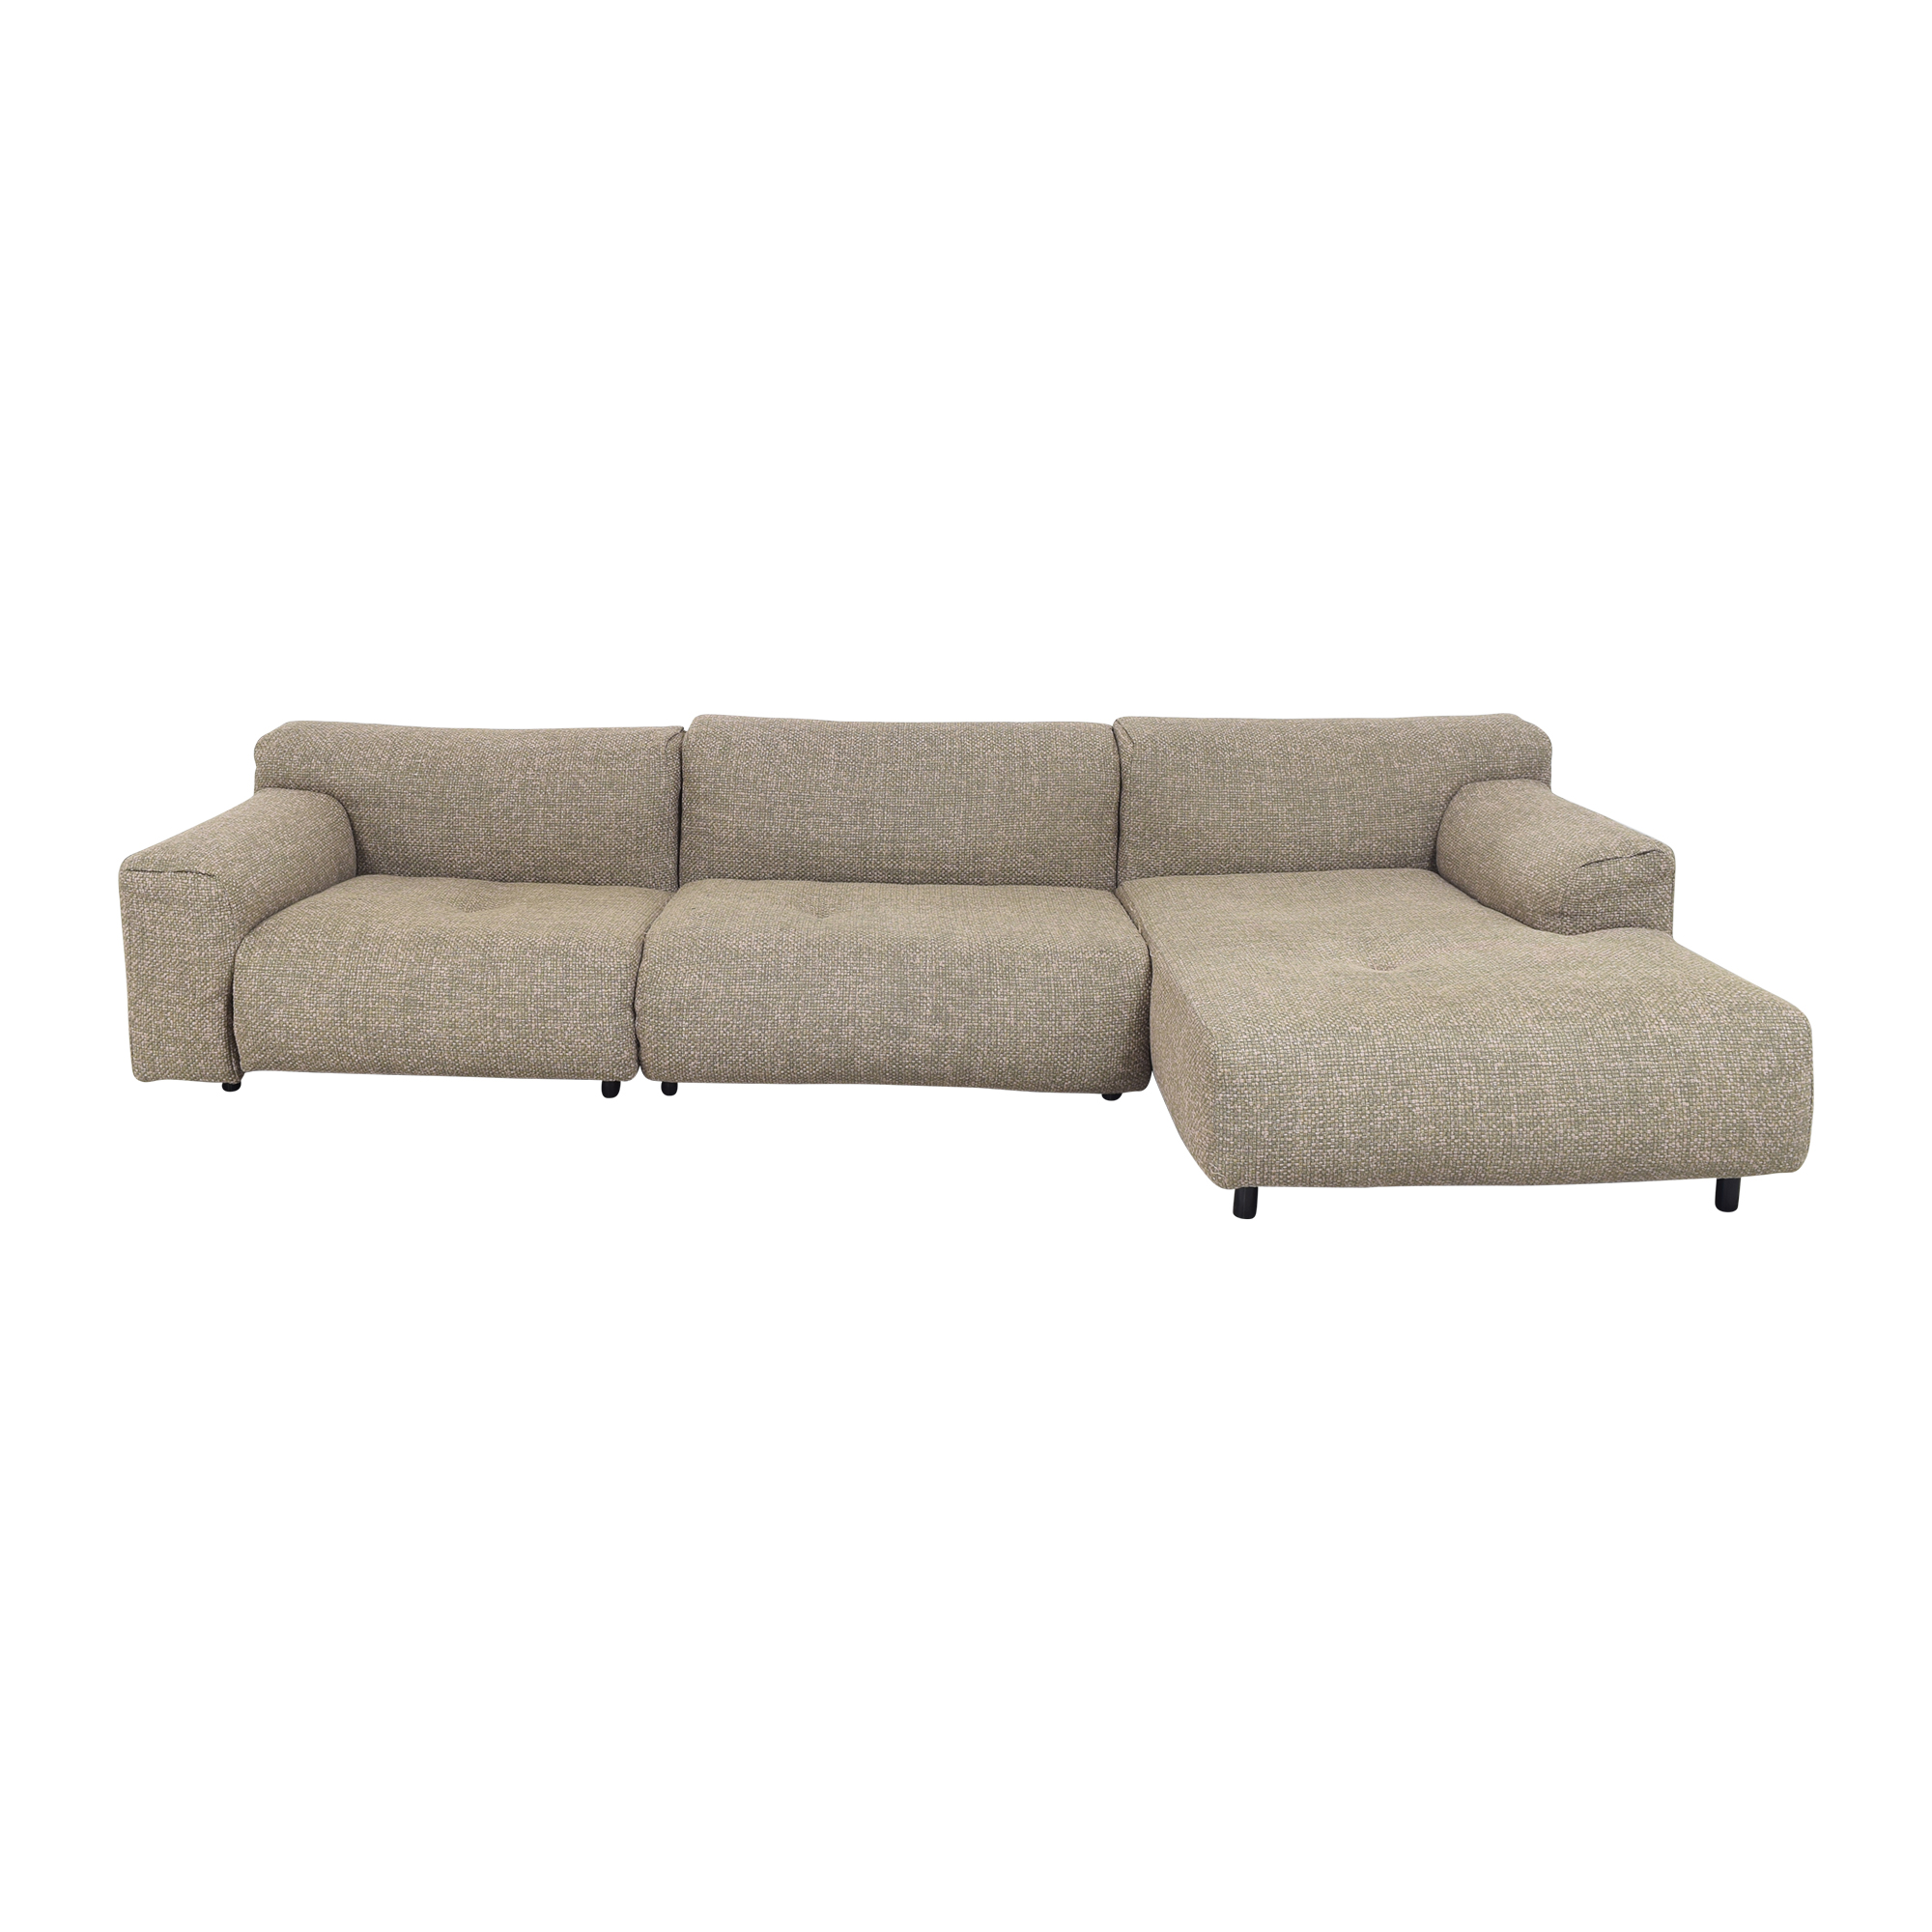 Living Divani Living Divani Sectional Sofa with Chaise nyc